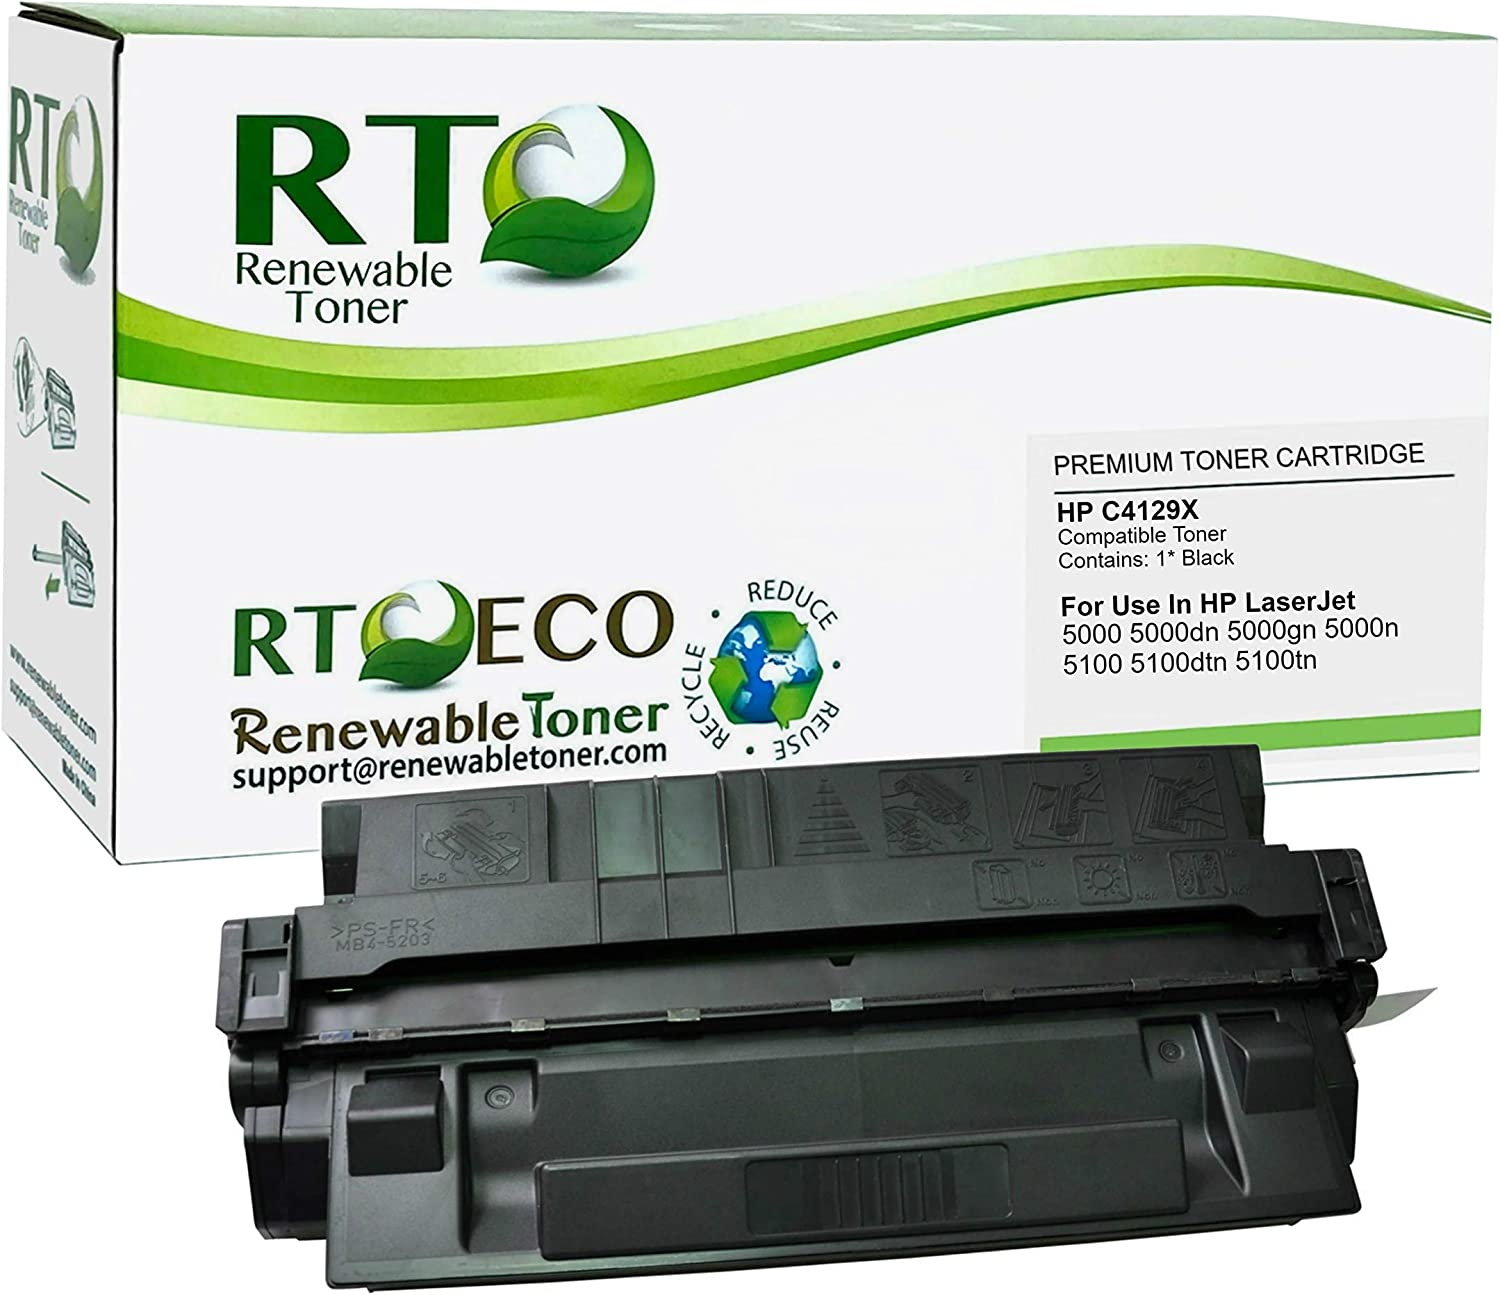 Renewable Toner Compatible Toner Cartridge High Yield Replacement for HP 29X C4129X for Laserjet 5000 5100 Printers